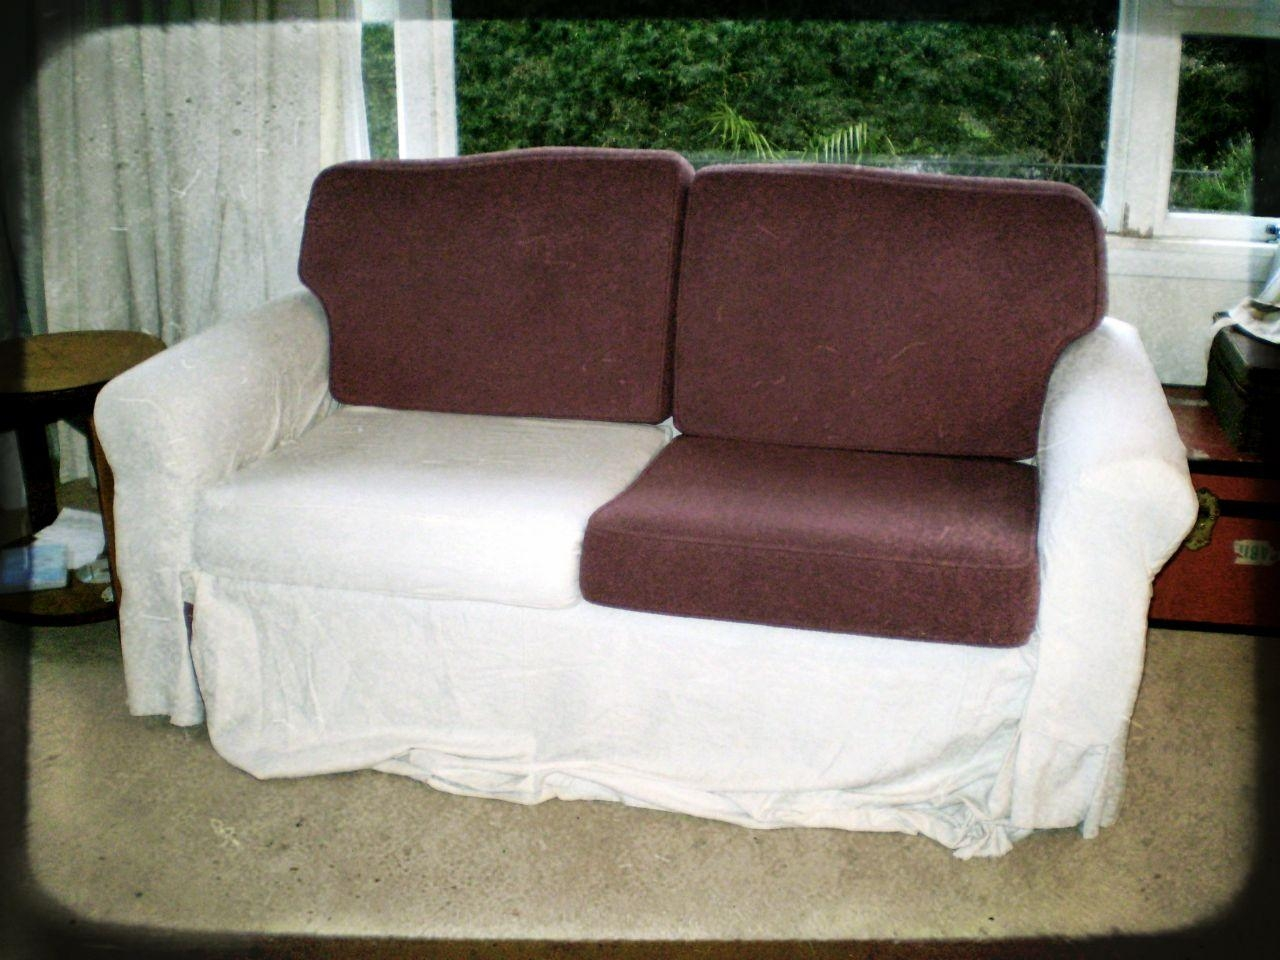 Furniture: Update Your Living Room With Best Sofa Slipcover Design Inside Canvas Sofa Slipcovers (Image 8 of 20)